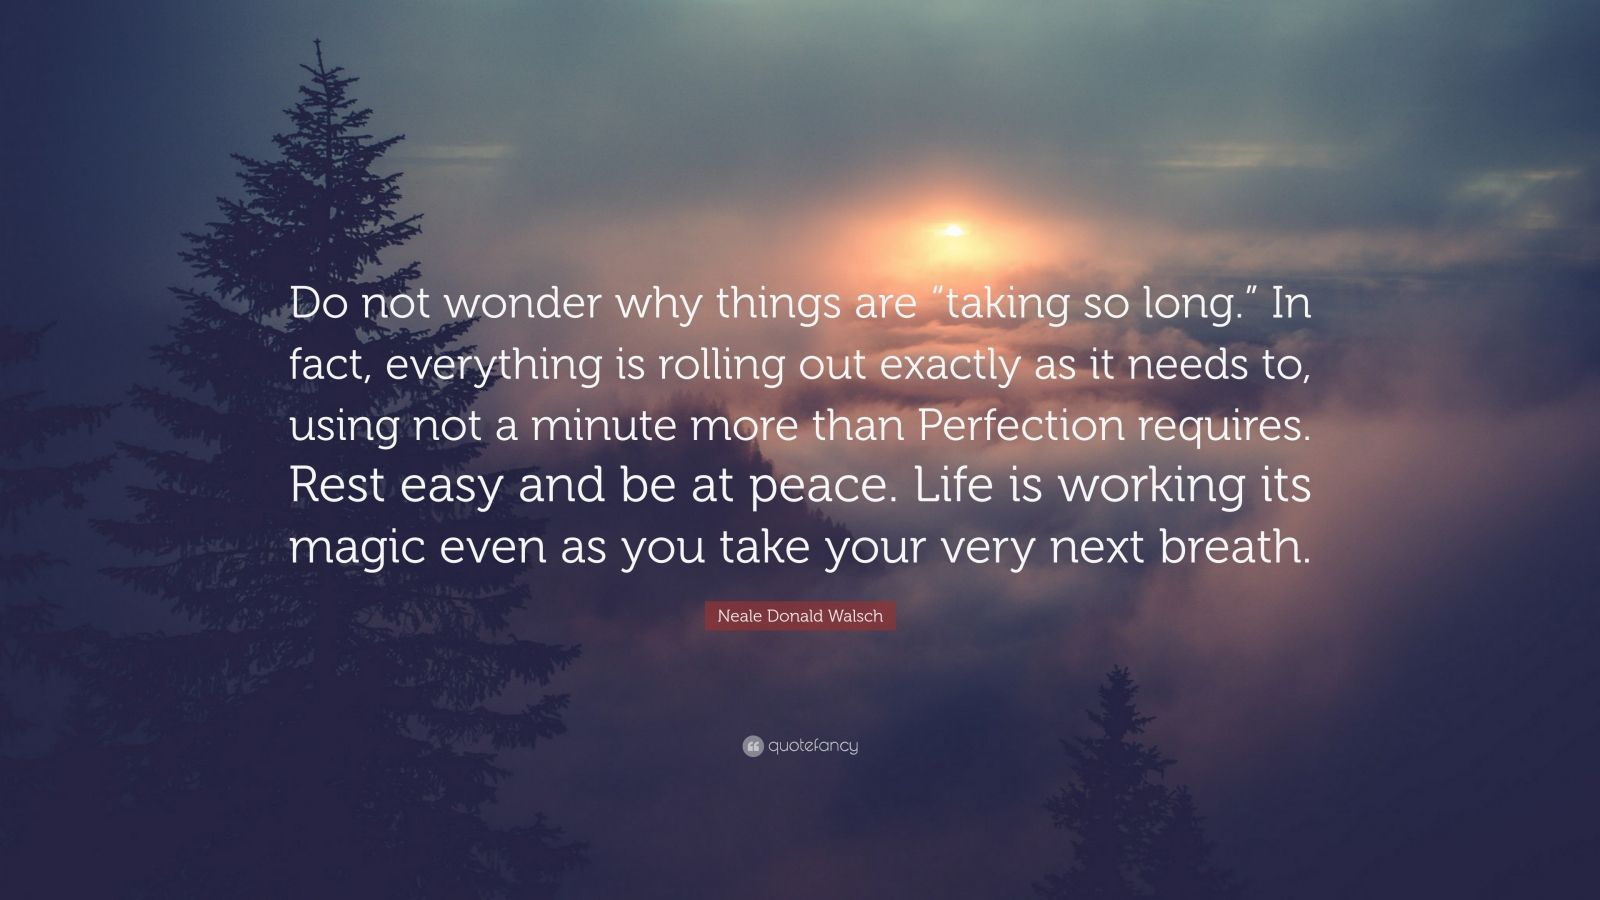 """Neale Donald Walsch Quote: """"Do not wonder why things are """"taking so long."""" In fact, everything is rolling out exactly as it needs to, using not a minute more than Perfection requires. Rest easy and be at peace. Life is working its magic even as you take your very next breath."""""""